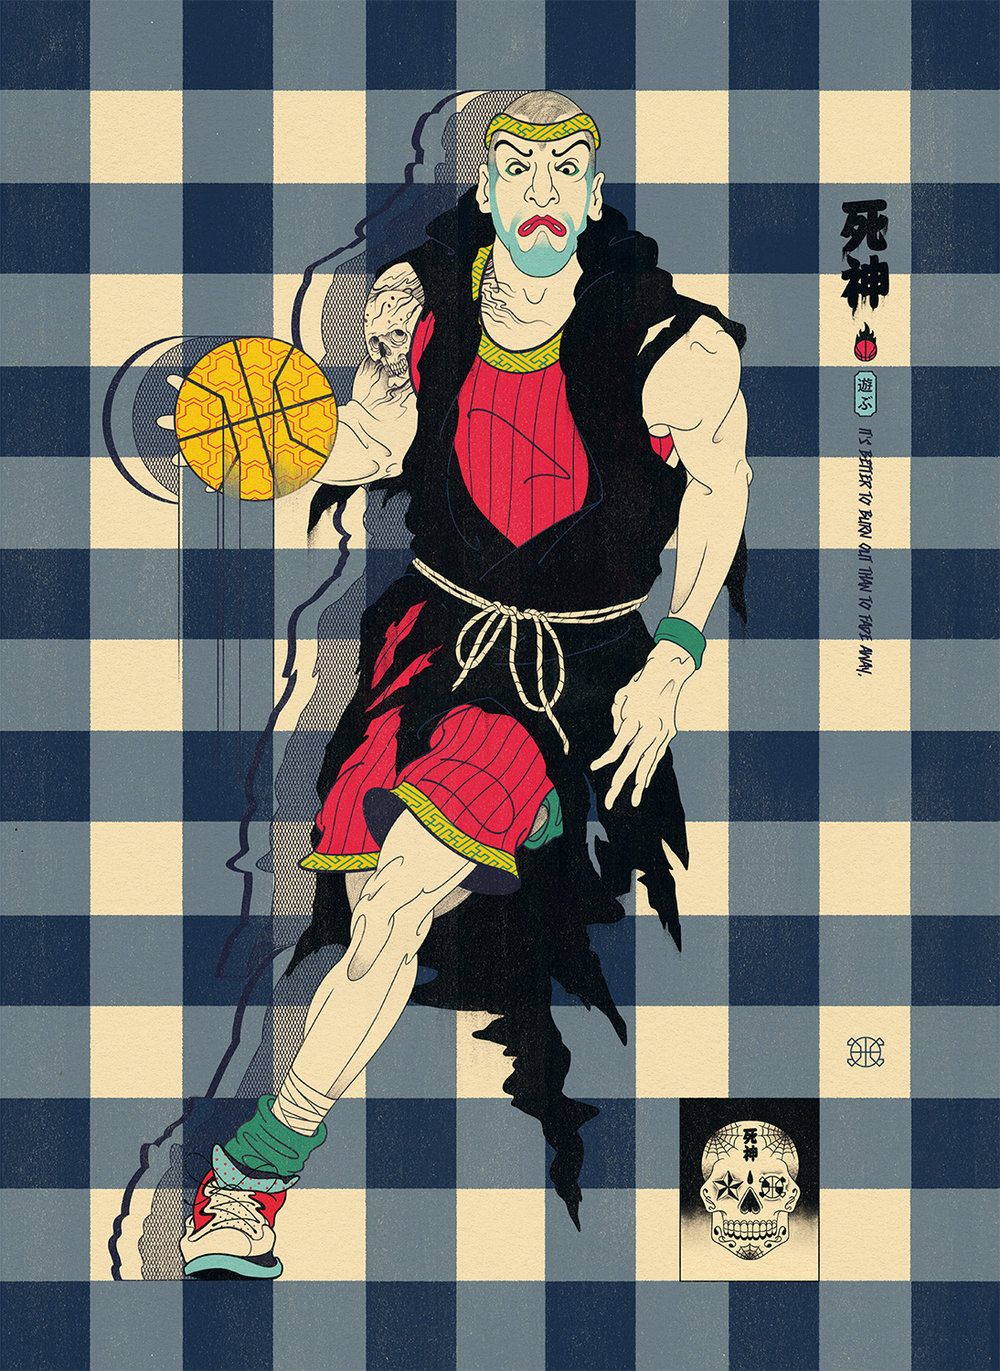 Edo Ball NBA Basketball Art - The Shinigami Reaper.